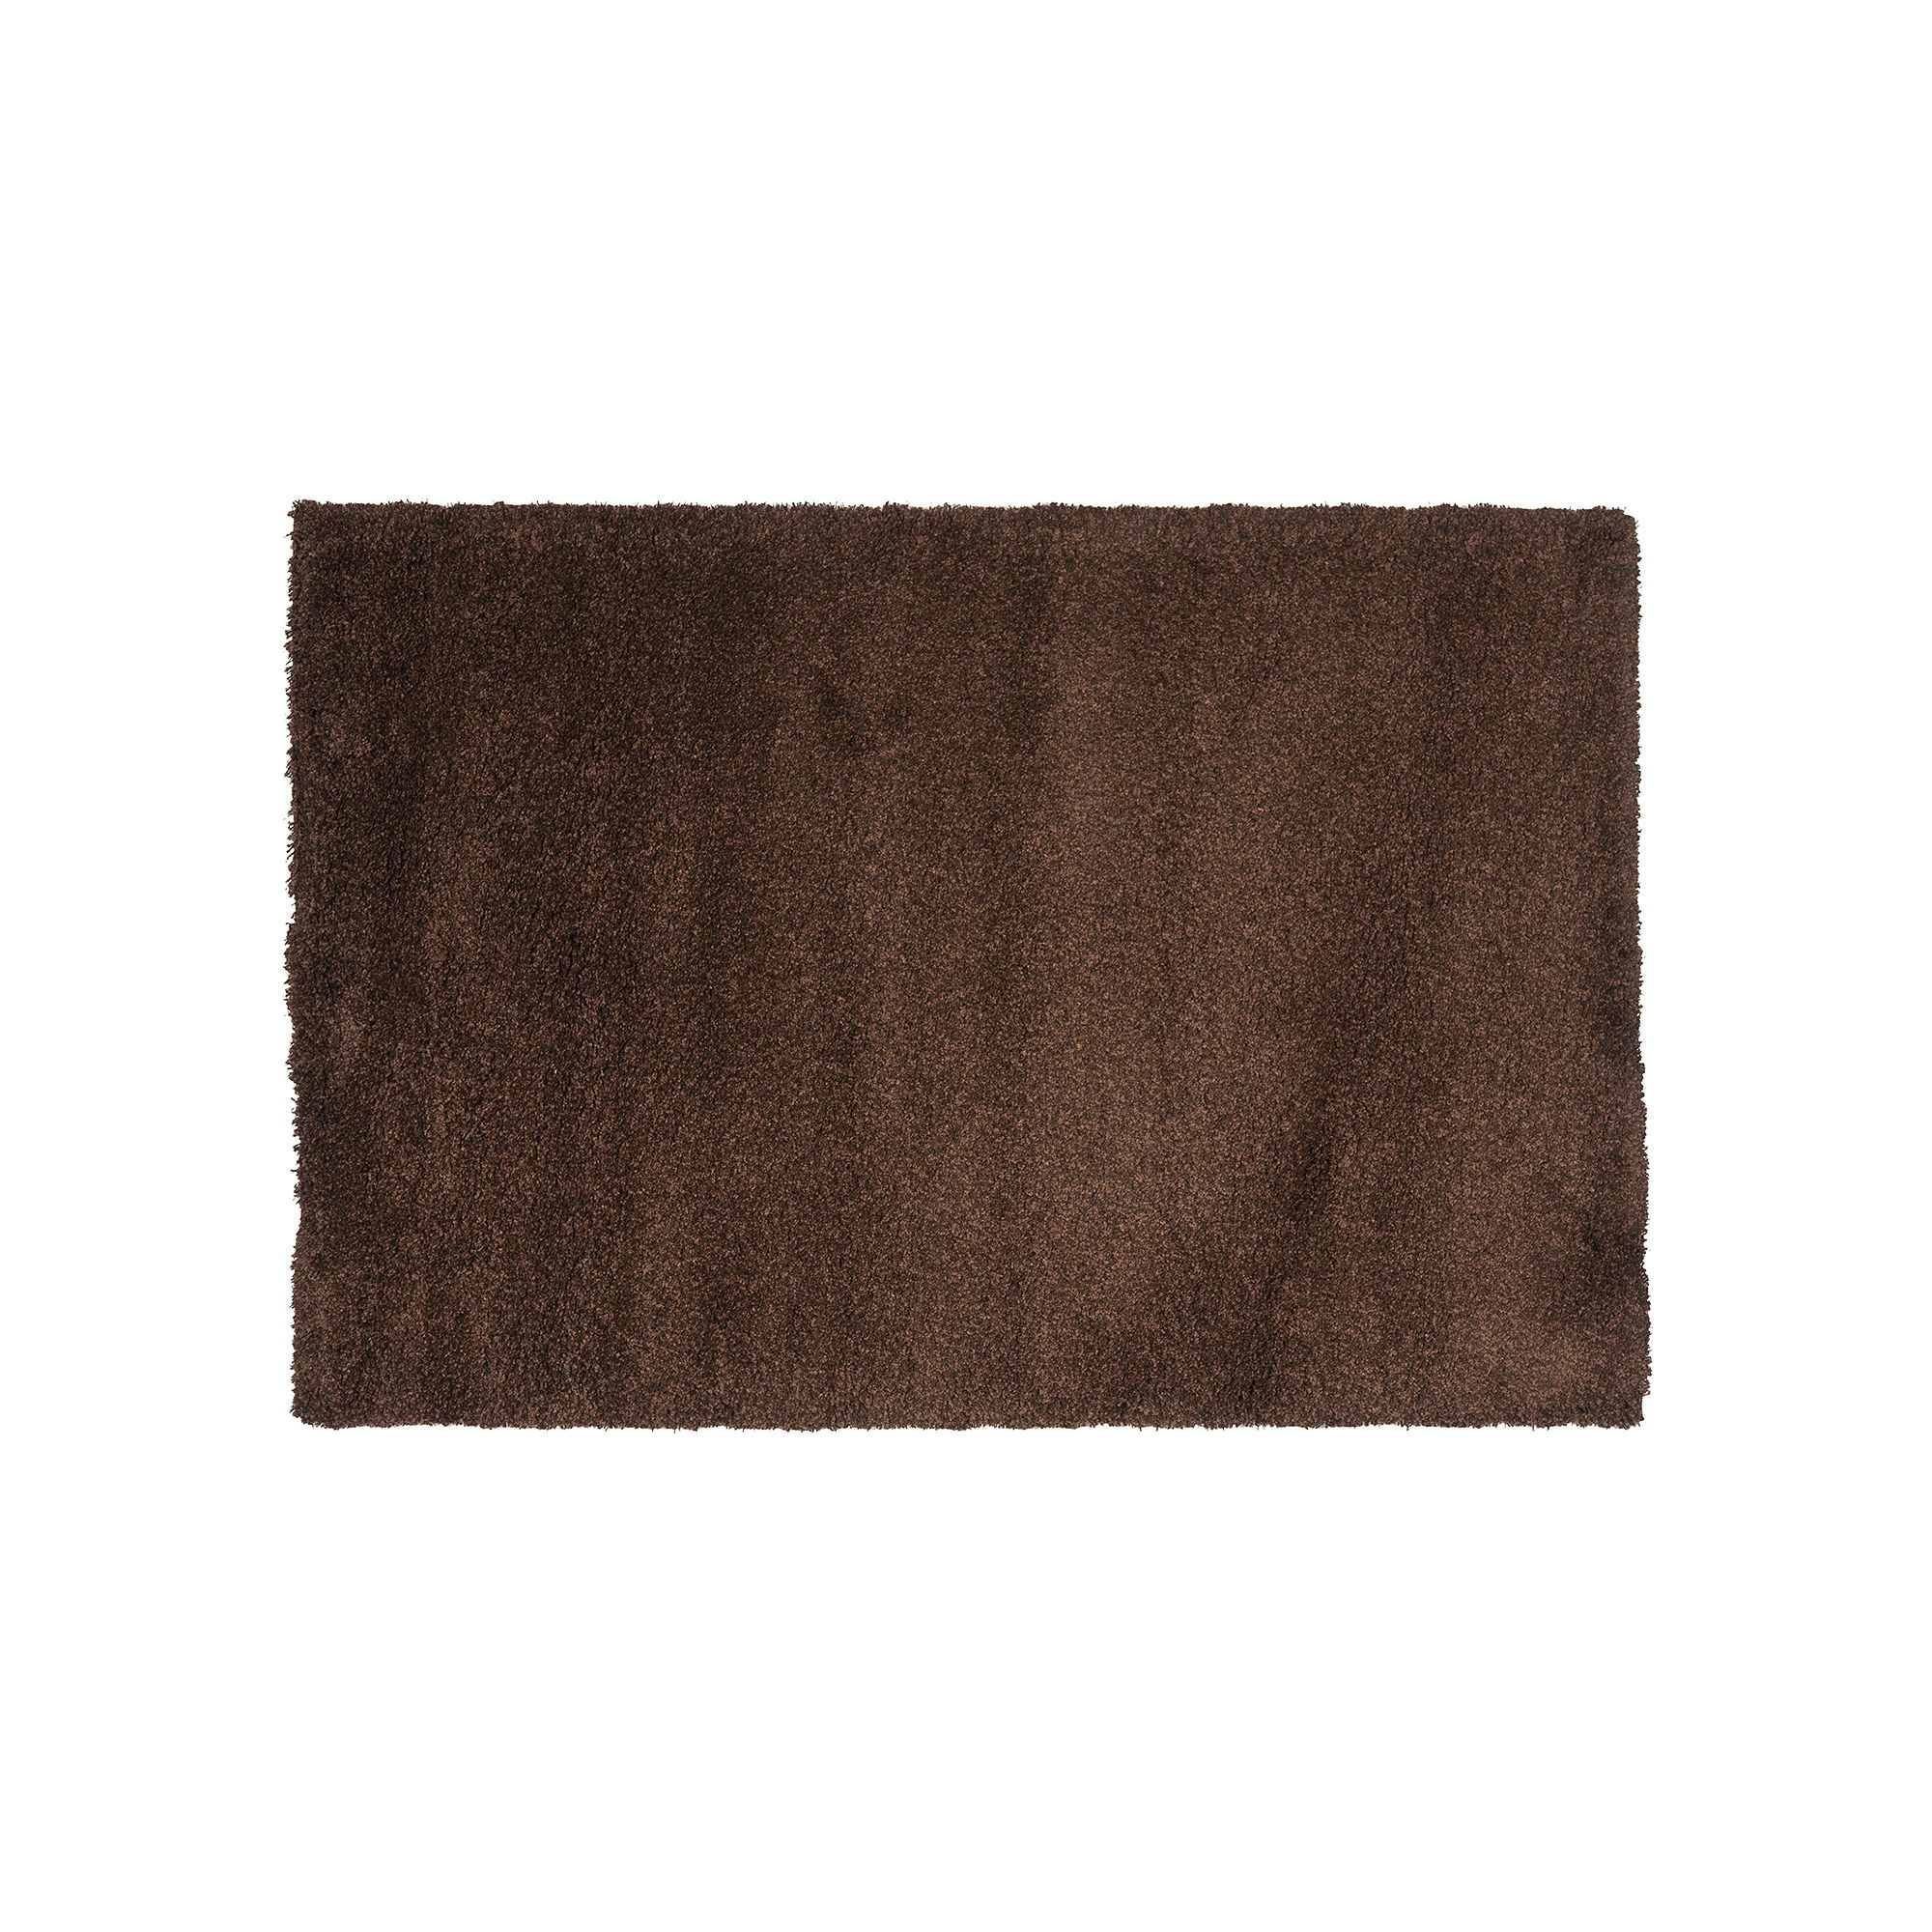 safavieh california plush classic shag rug brown oth